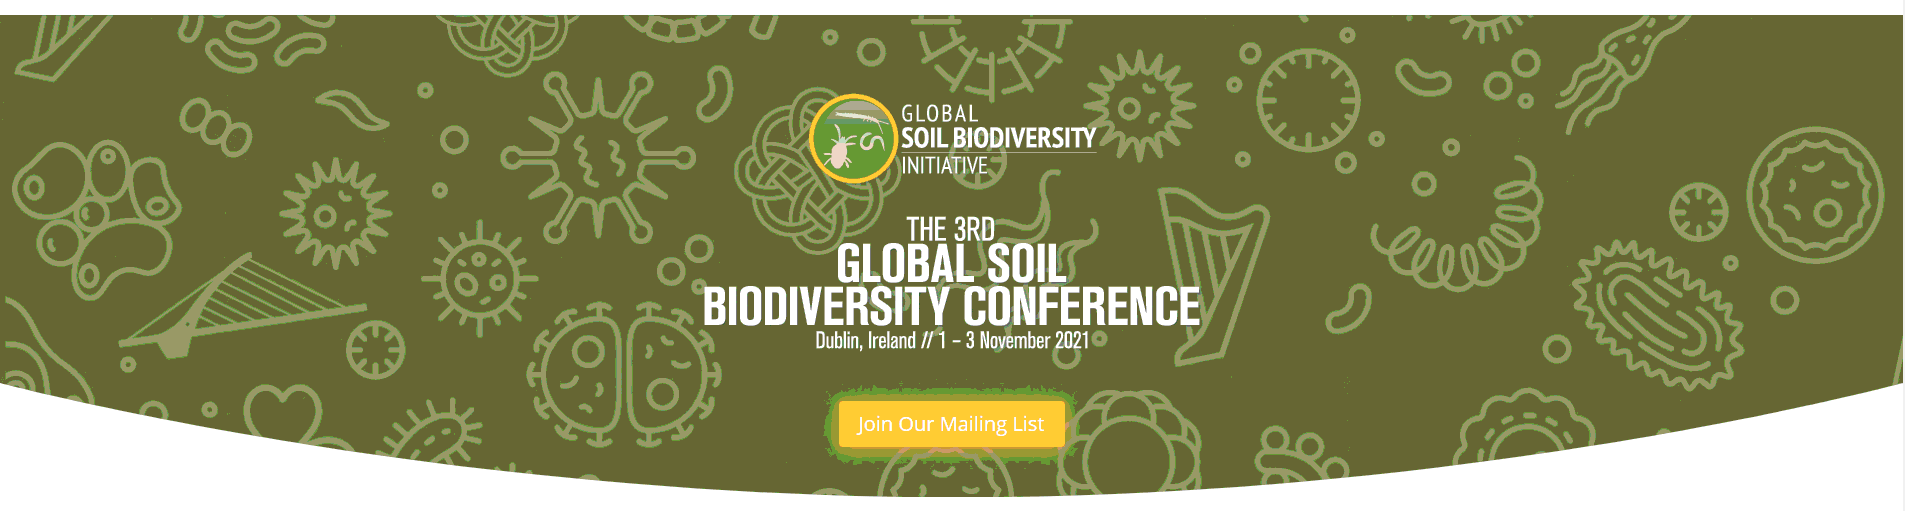 Global Soil Biodiversity Initiative GSBI